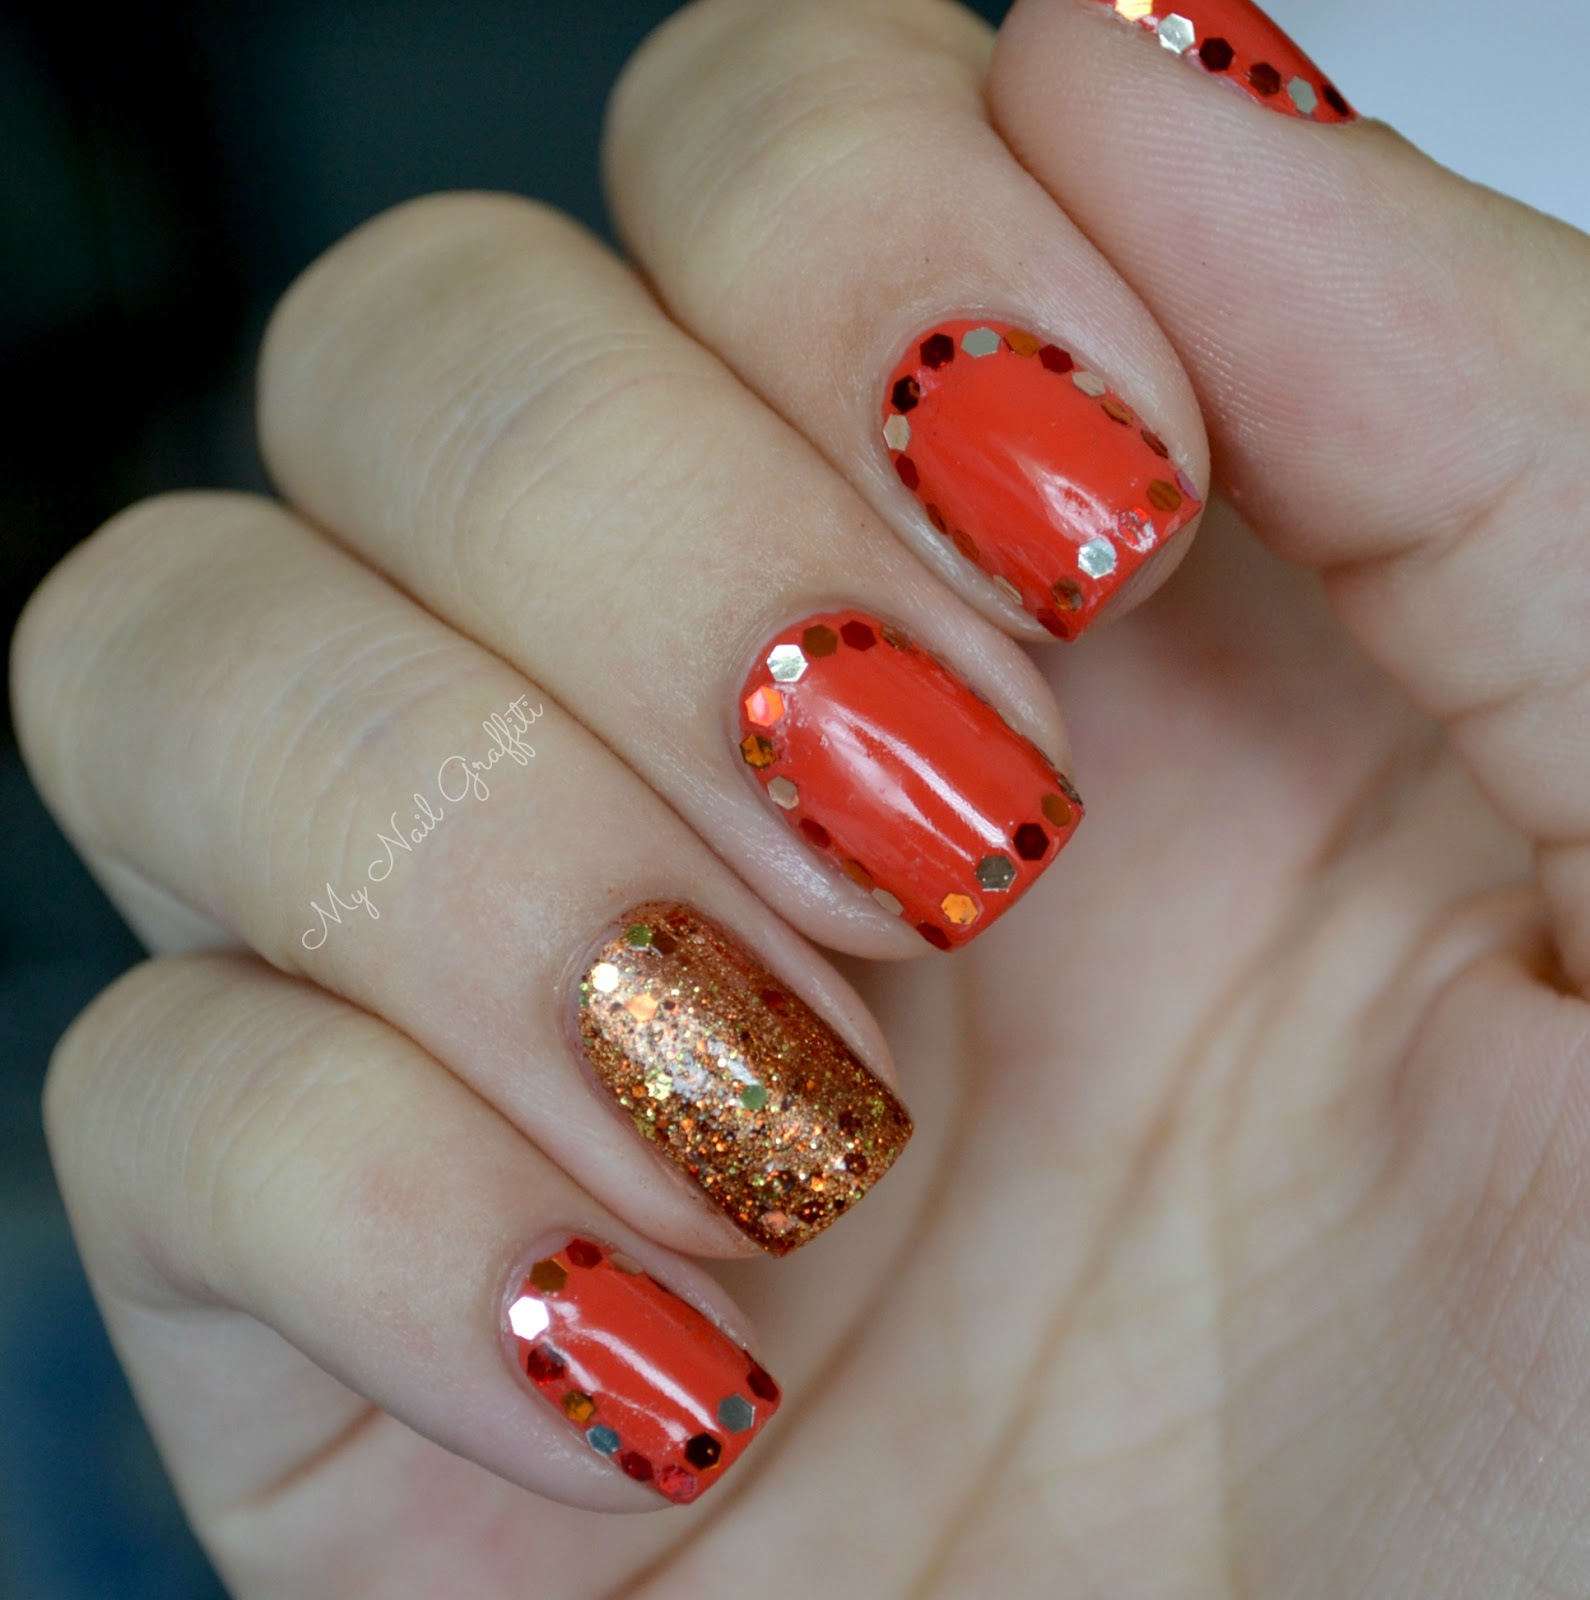 Gorgeous Autumn Inspired Nails: My Nail Graffiti: Fall Inspired Glequins